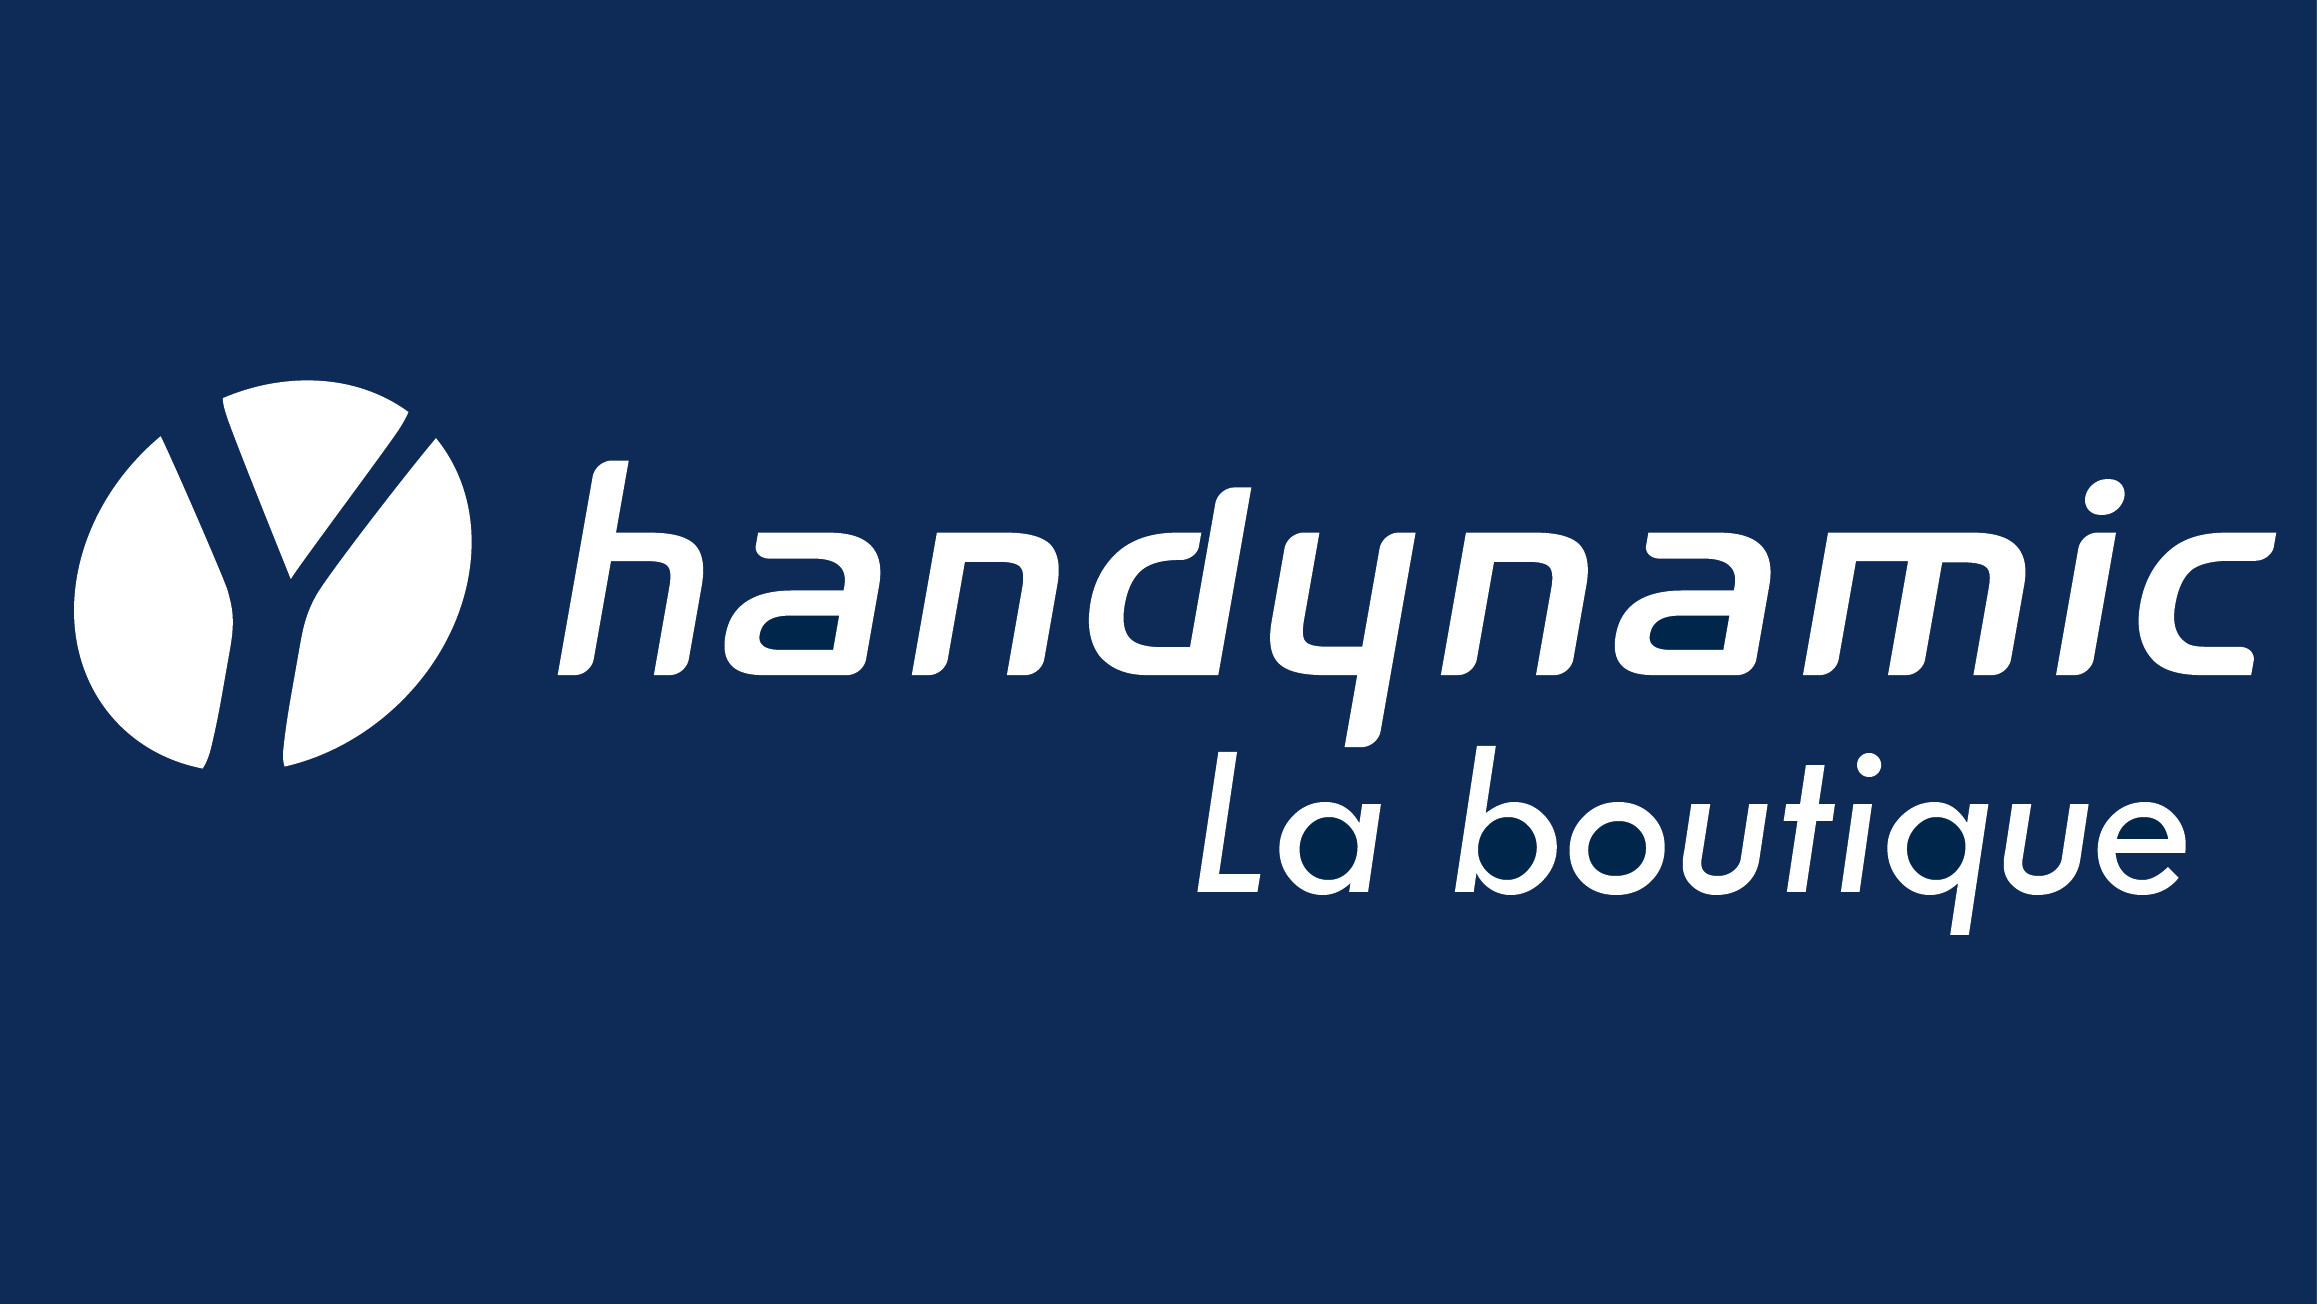 handynamic la boutique #0e2b58